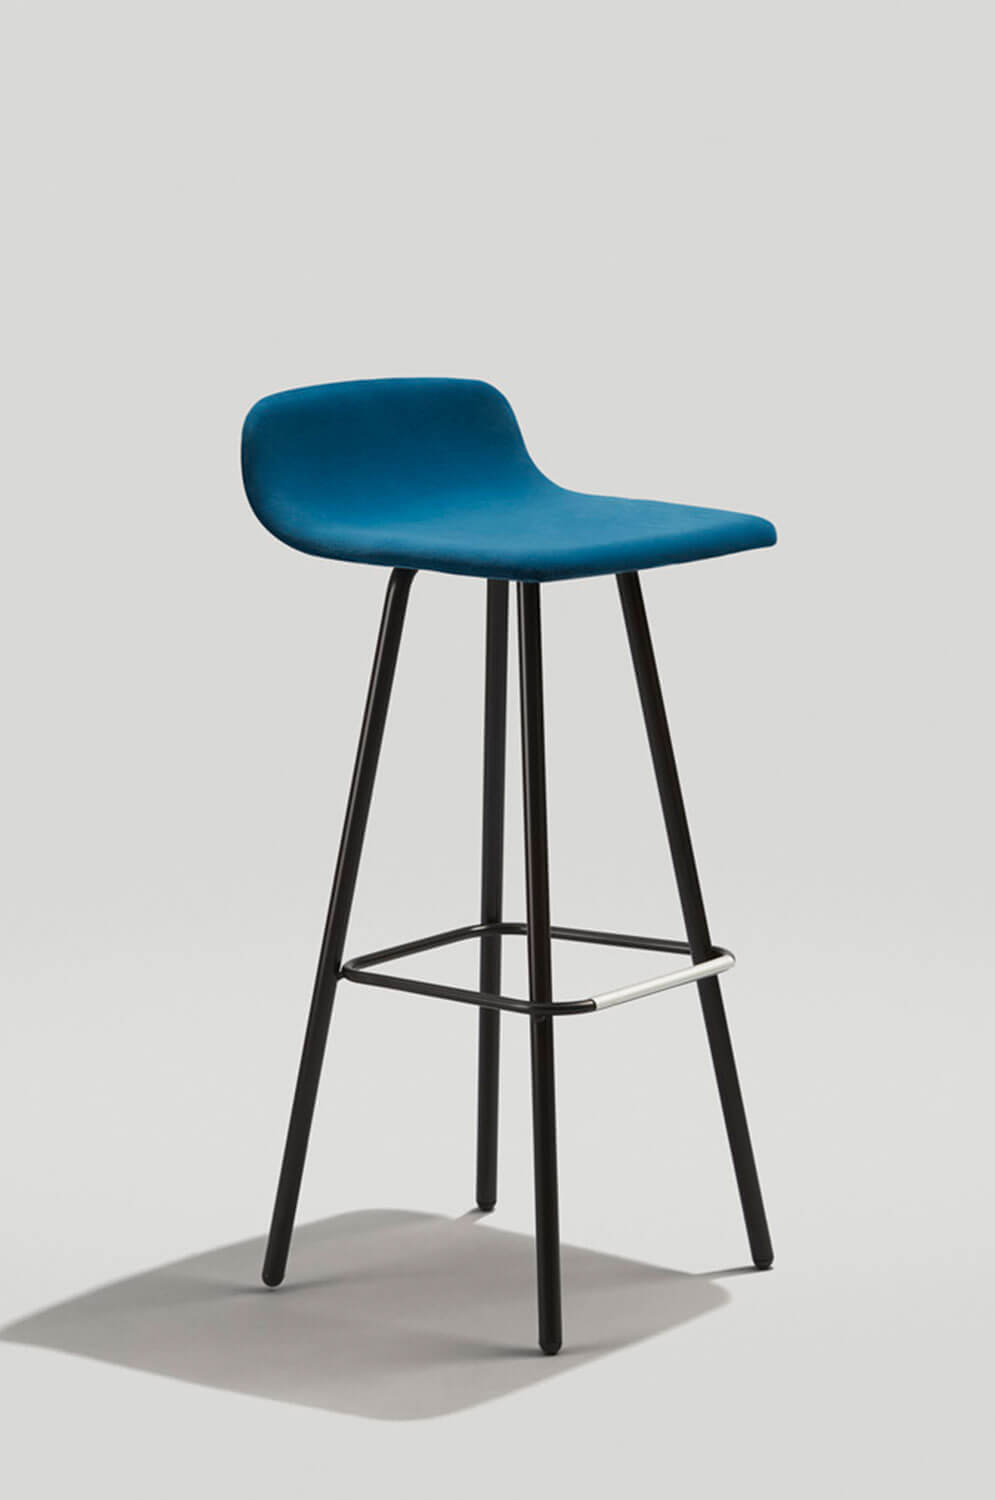 Wondrous Harper Upholstered Low Back Stool With 4 Leg Base Creativecarmelina Interior Chair Design Creativecarmelinacom